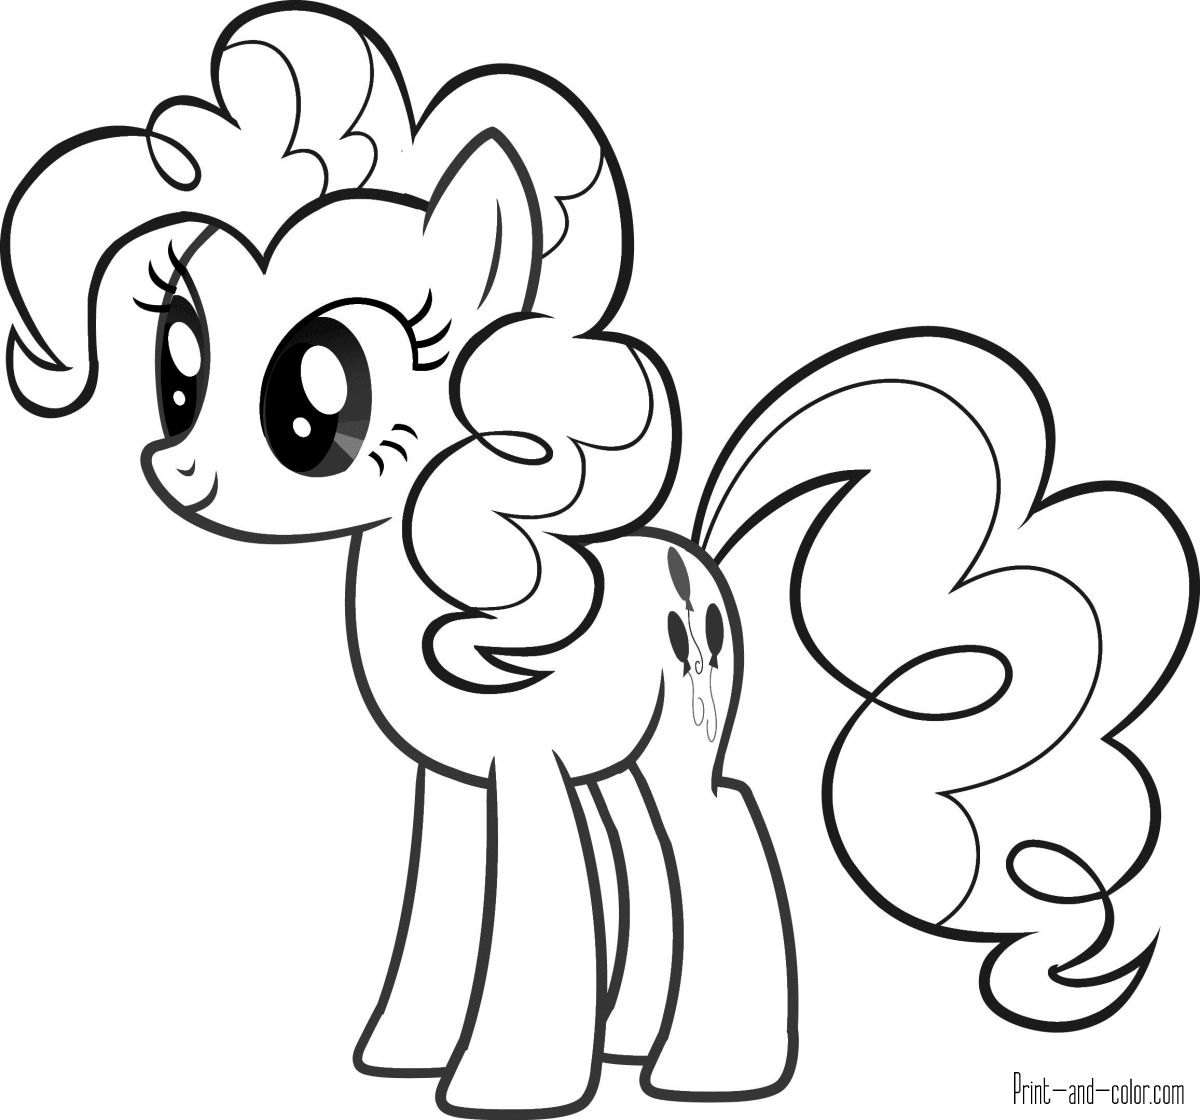 My Little Pony Coloring Sheets Pdf My Little Pony Coloring Pages Free Pdf My Litt Unicorn Coloring Pages Cartoon Coloring Pages Kids Printable Coloring Pages